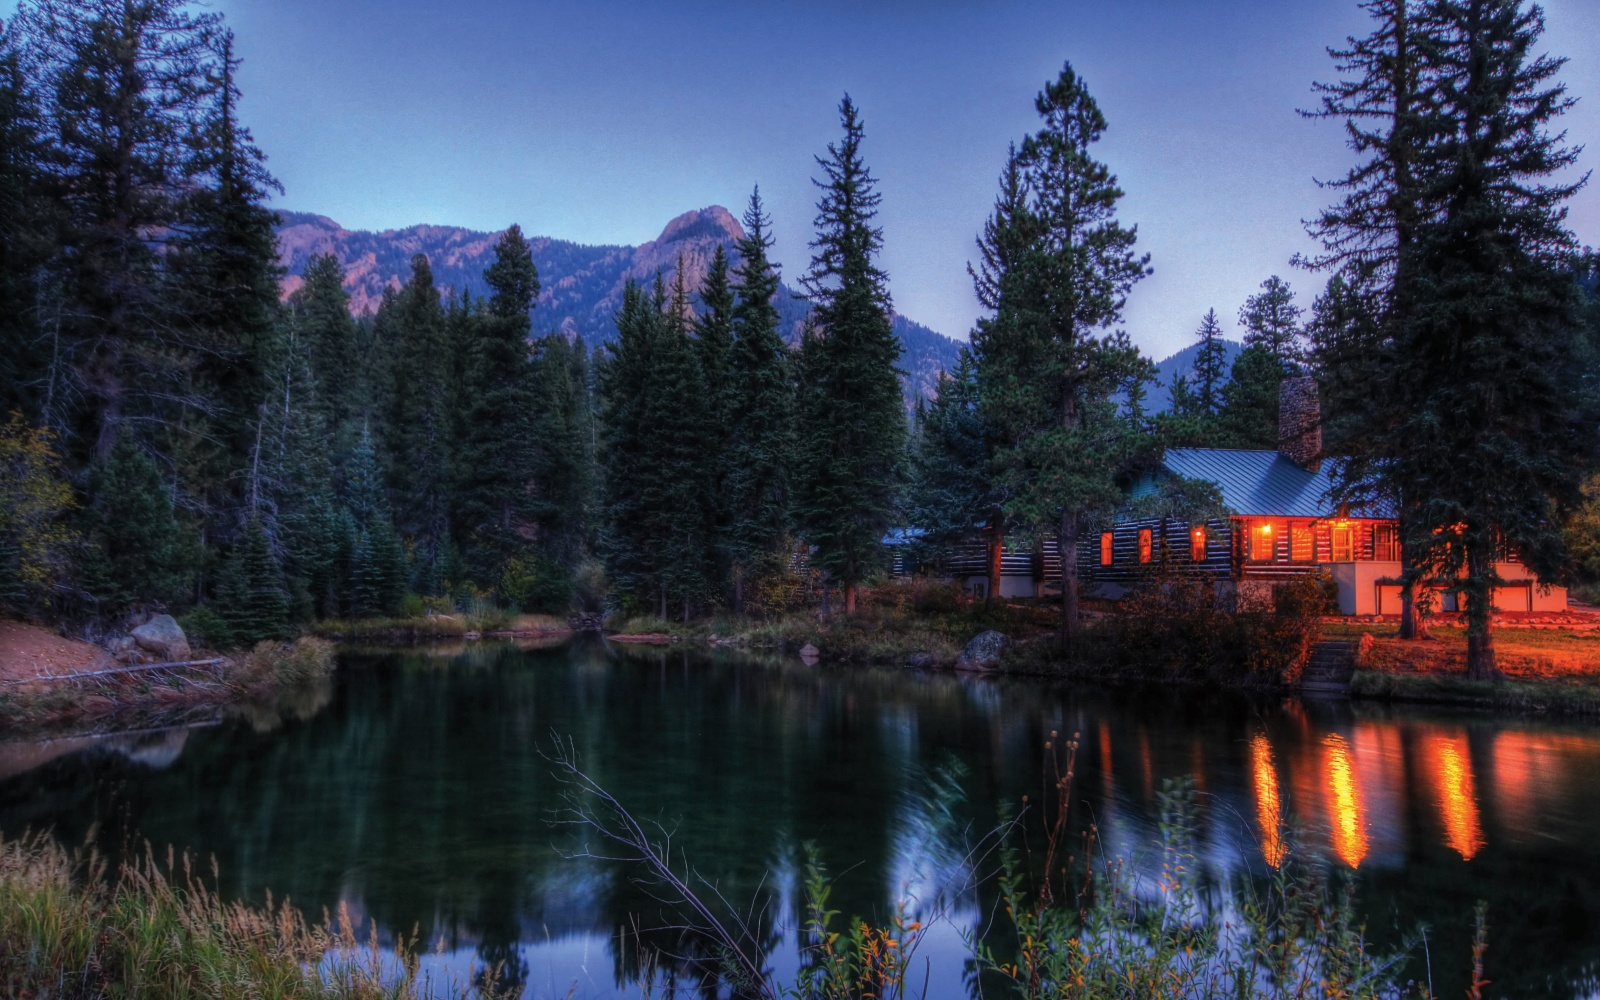 lakeside cabin at The Ranch at Emerald Valley, Colorado